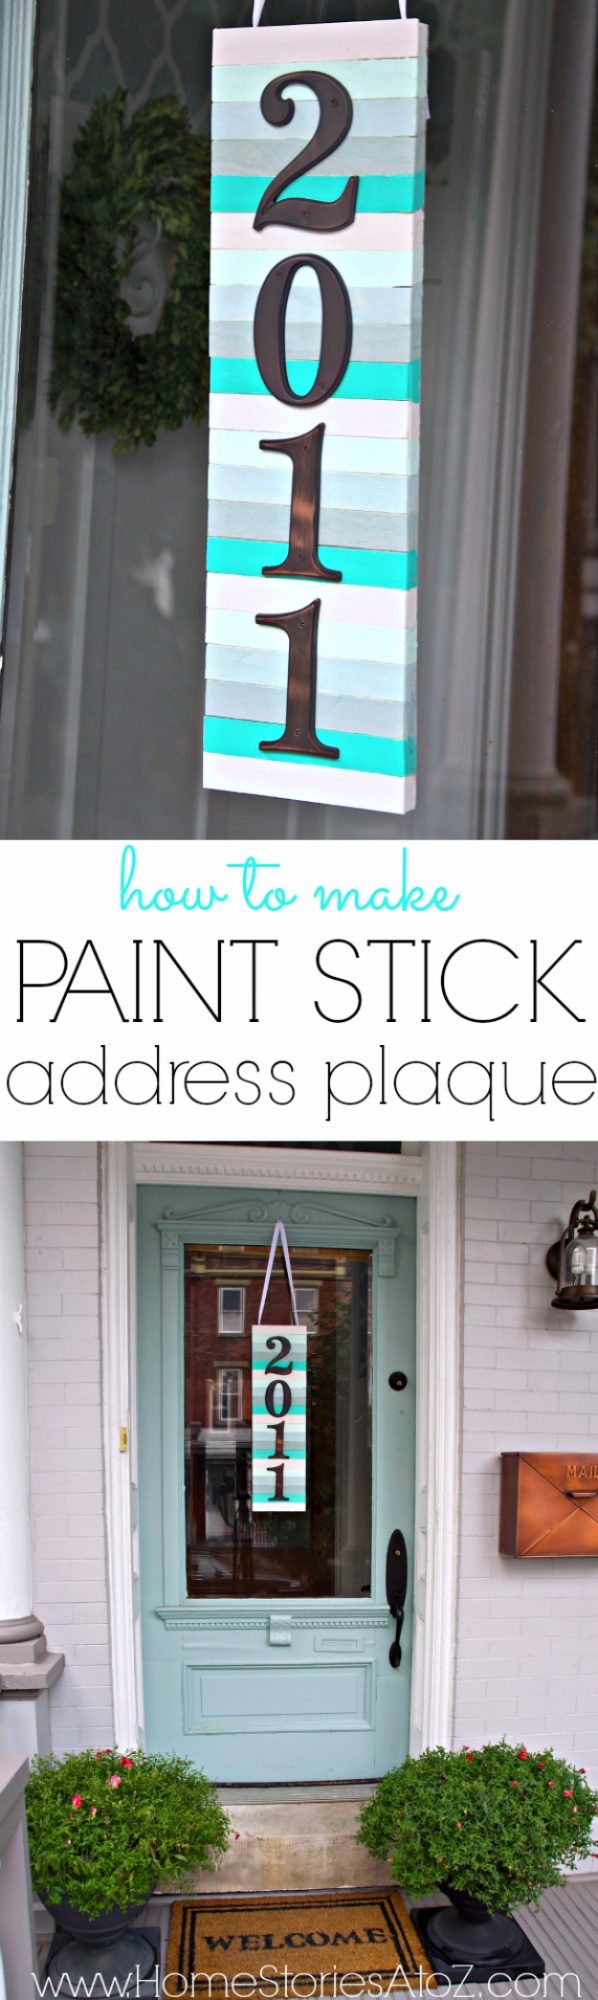 15 fun and easy diy paint stick ideas to spice up your home decor - Fun Home Decor Ideas